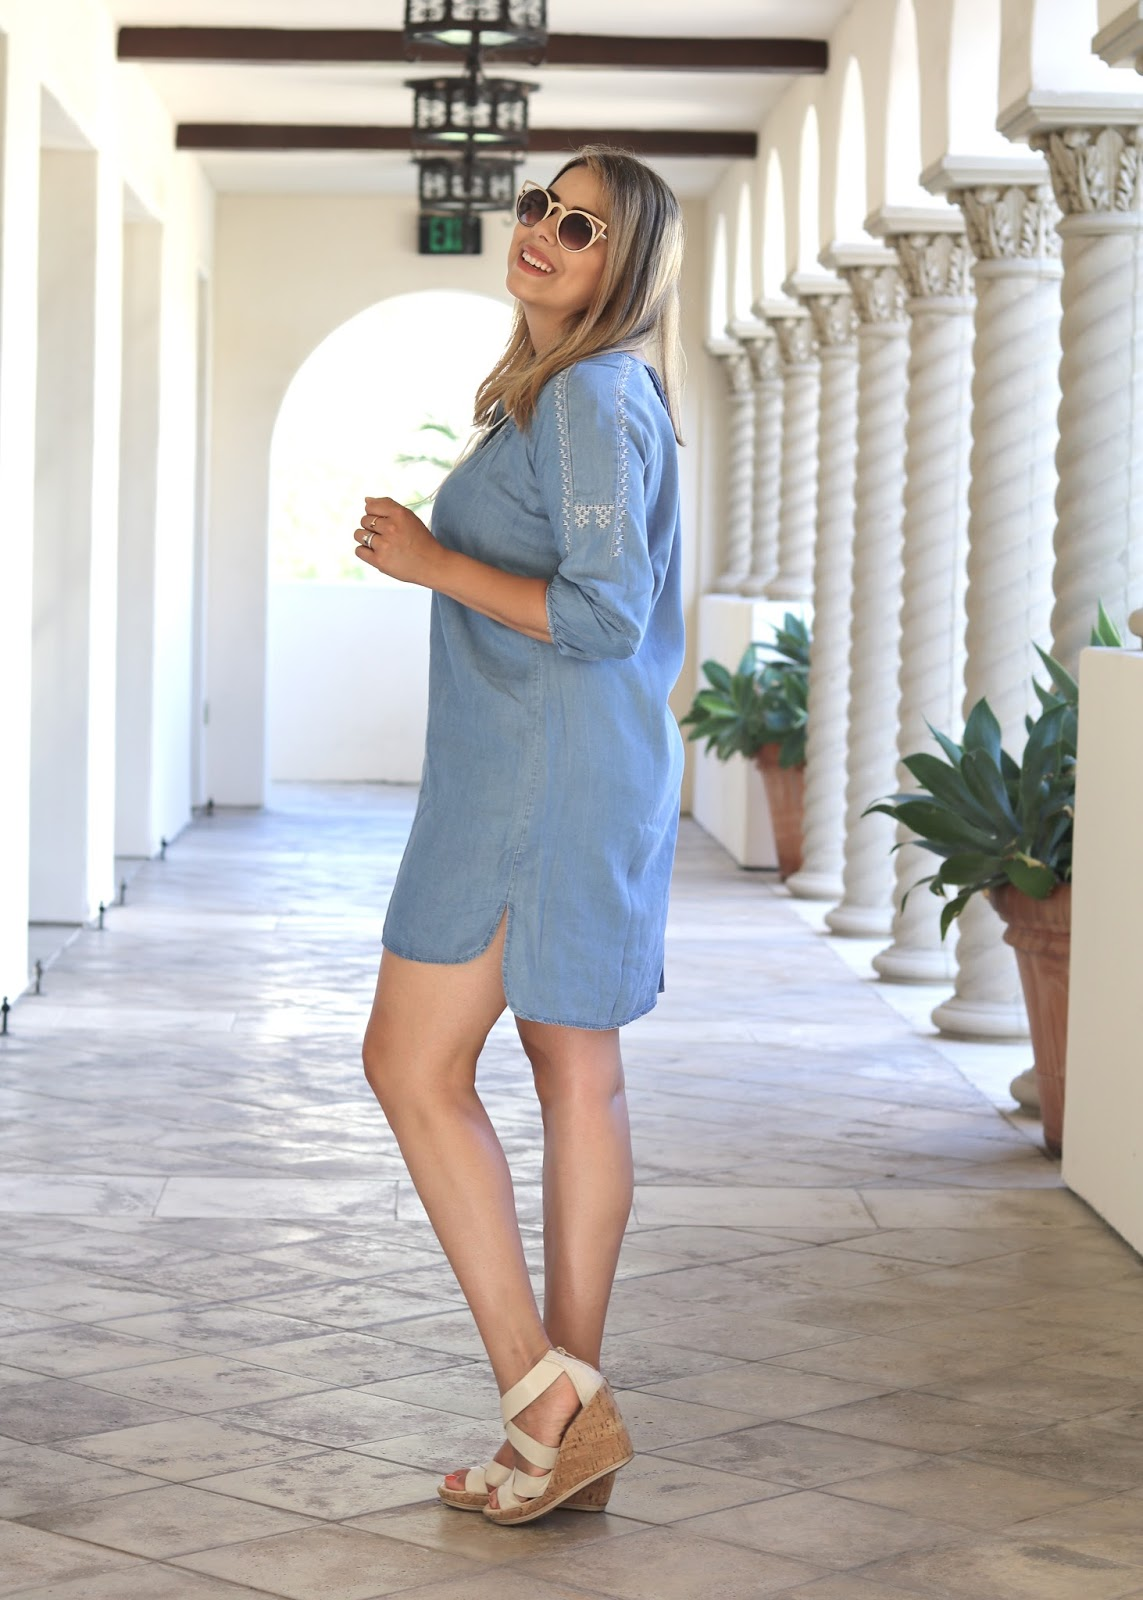 Comfortable summer dresses, summer 16 look, socal fashion blogger, chicwish denim dress, aldo shoes wedges